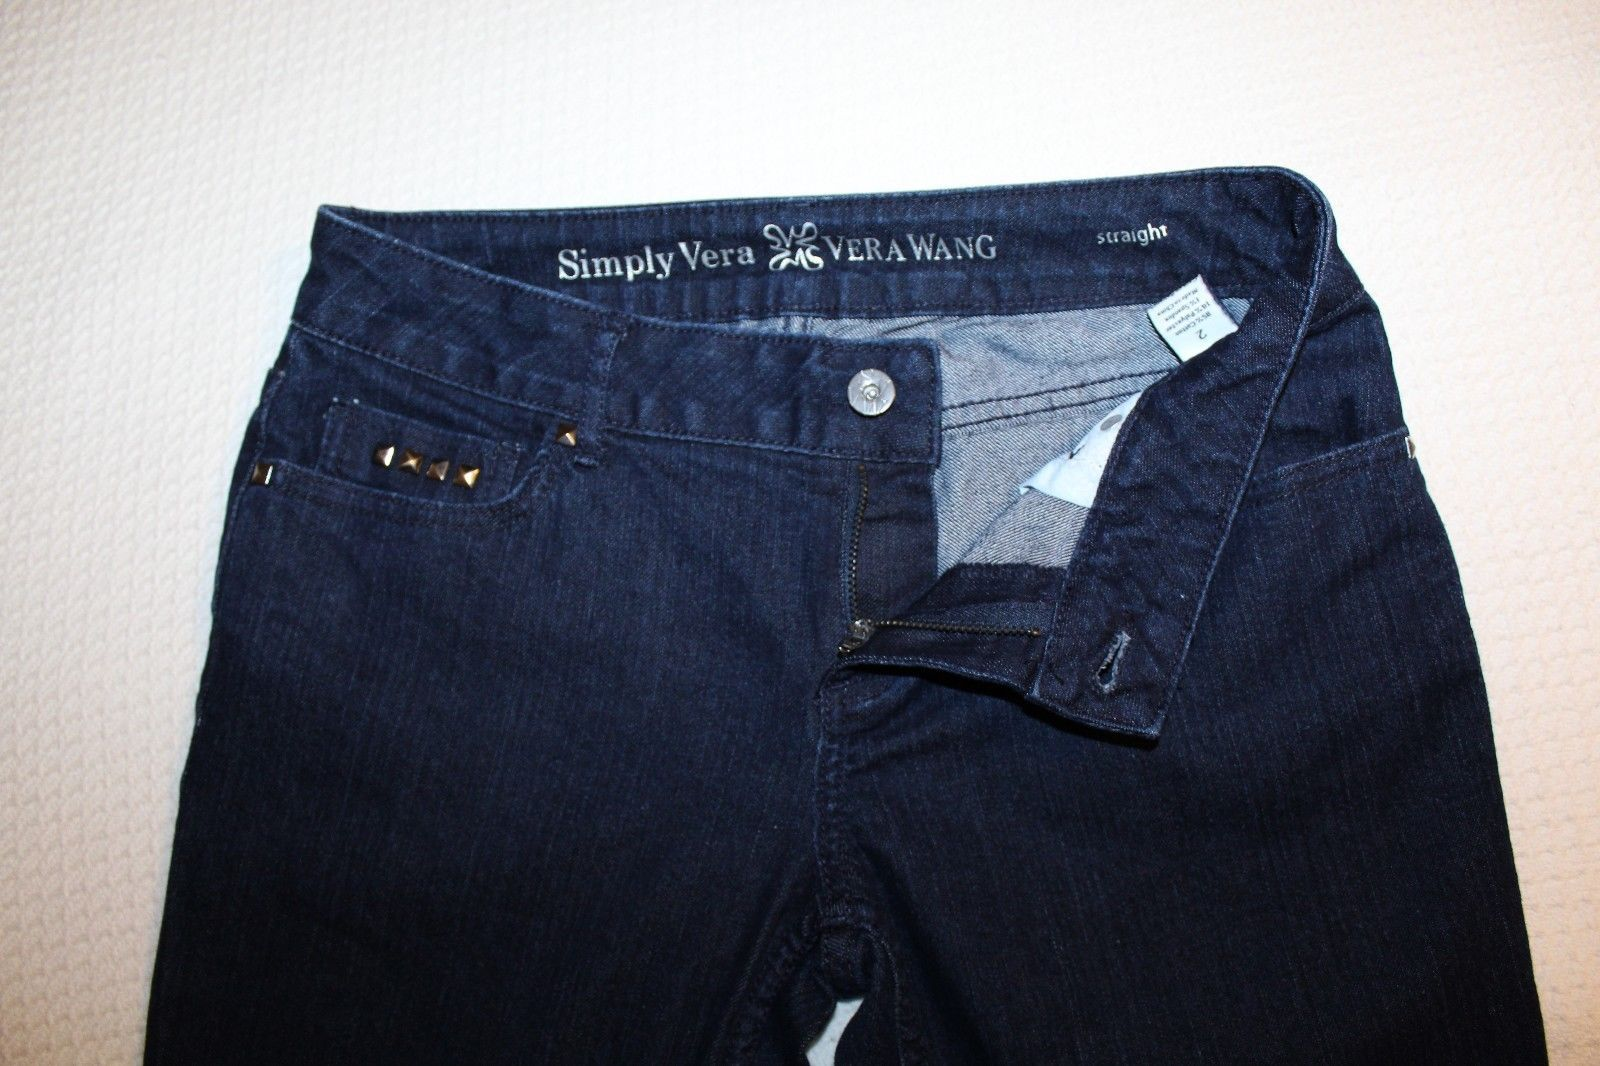 SIMPLY VERA VERA WANG Womens BOYFRIEND JEAN SHORTS SIZE 6 Stretch DENIM Mid-rise